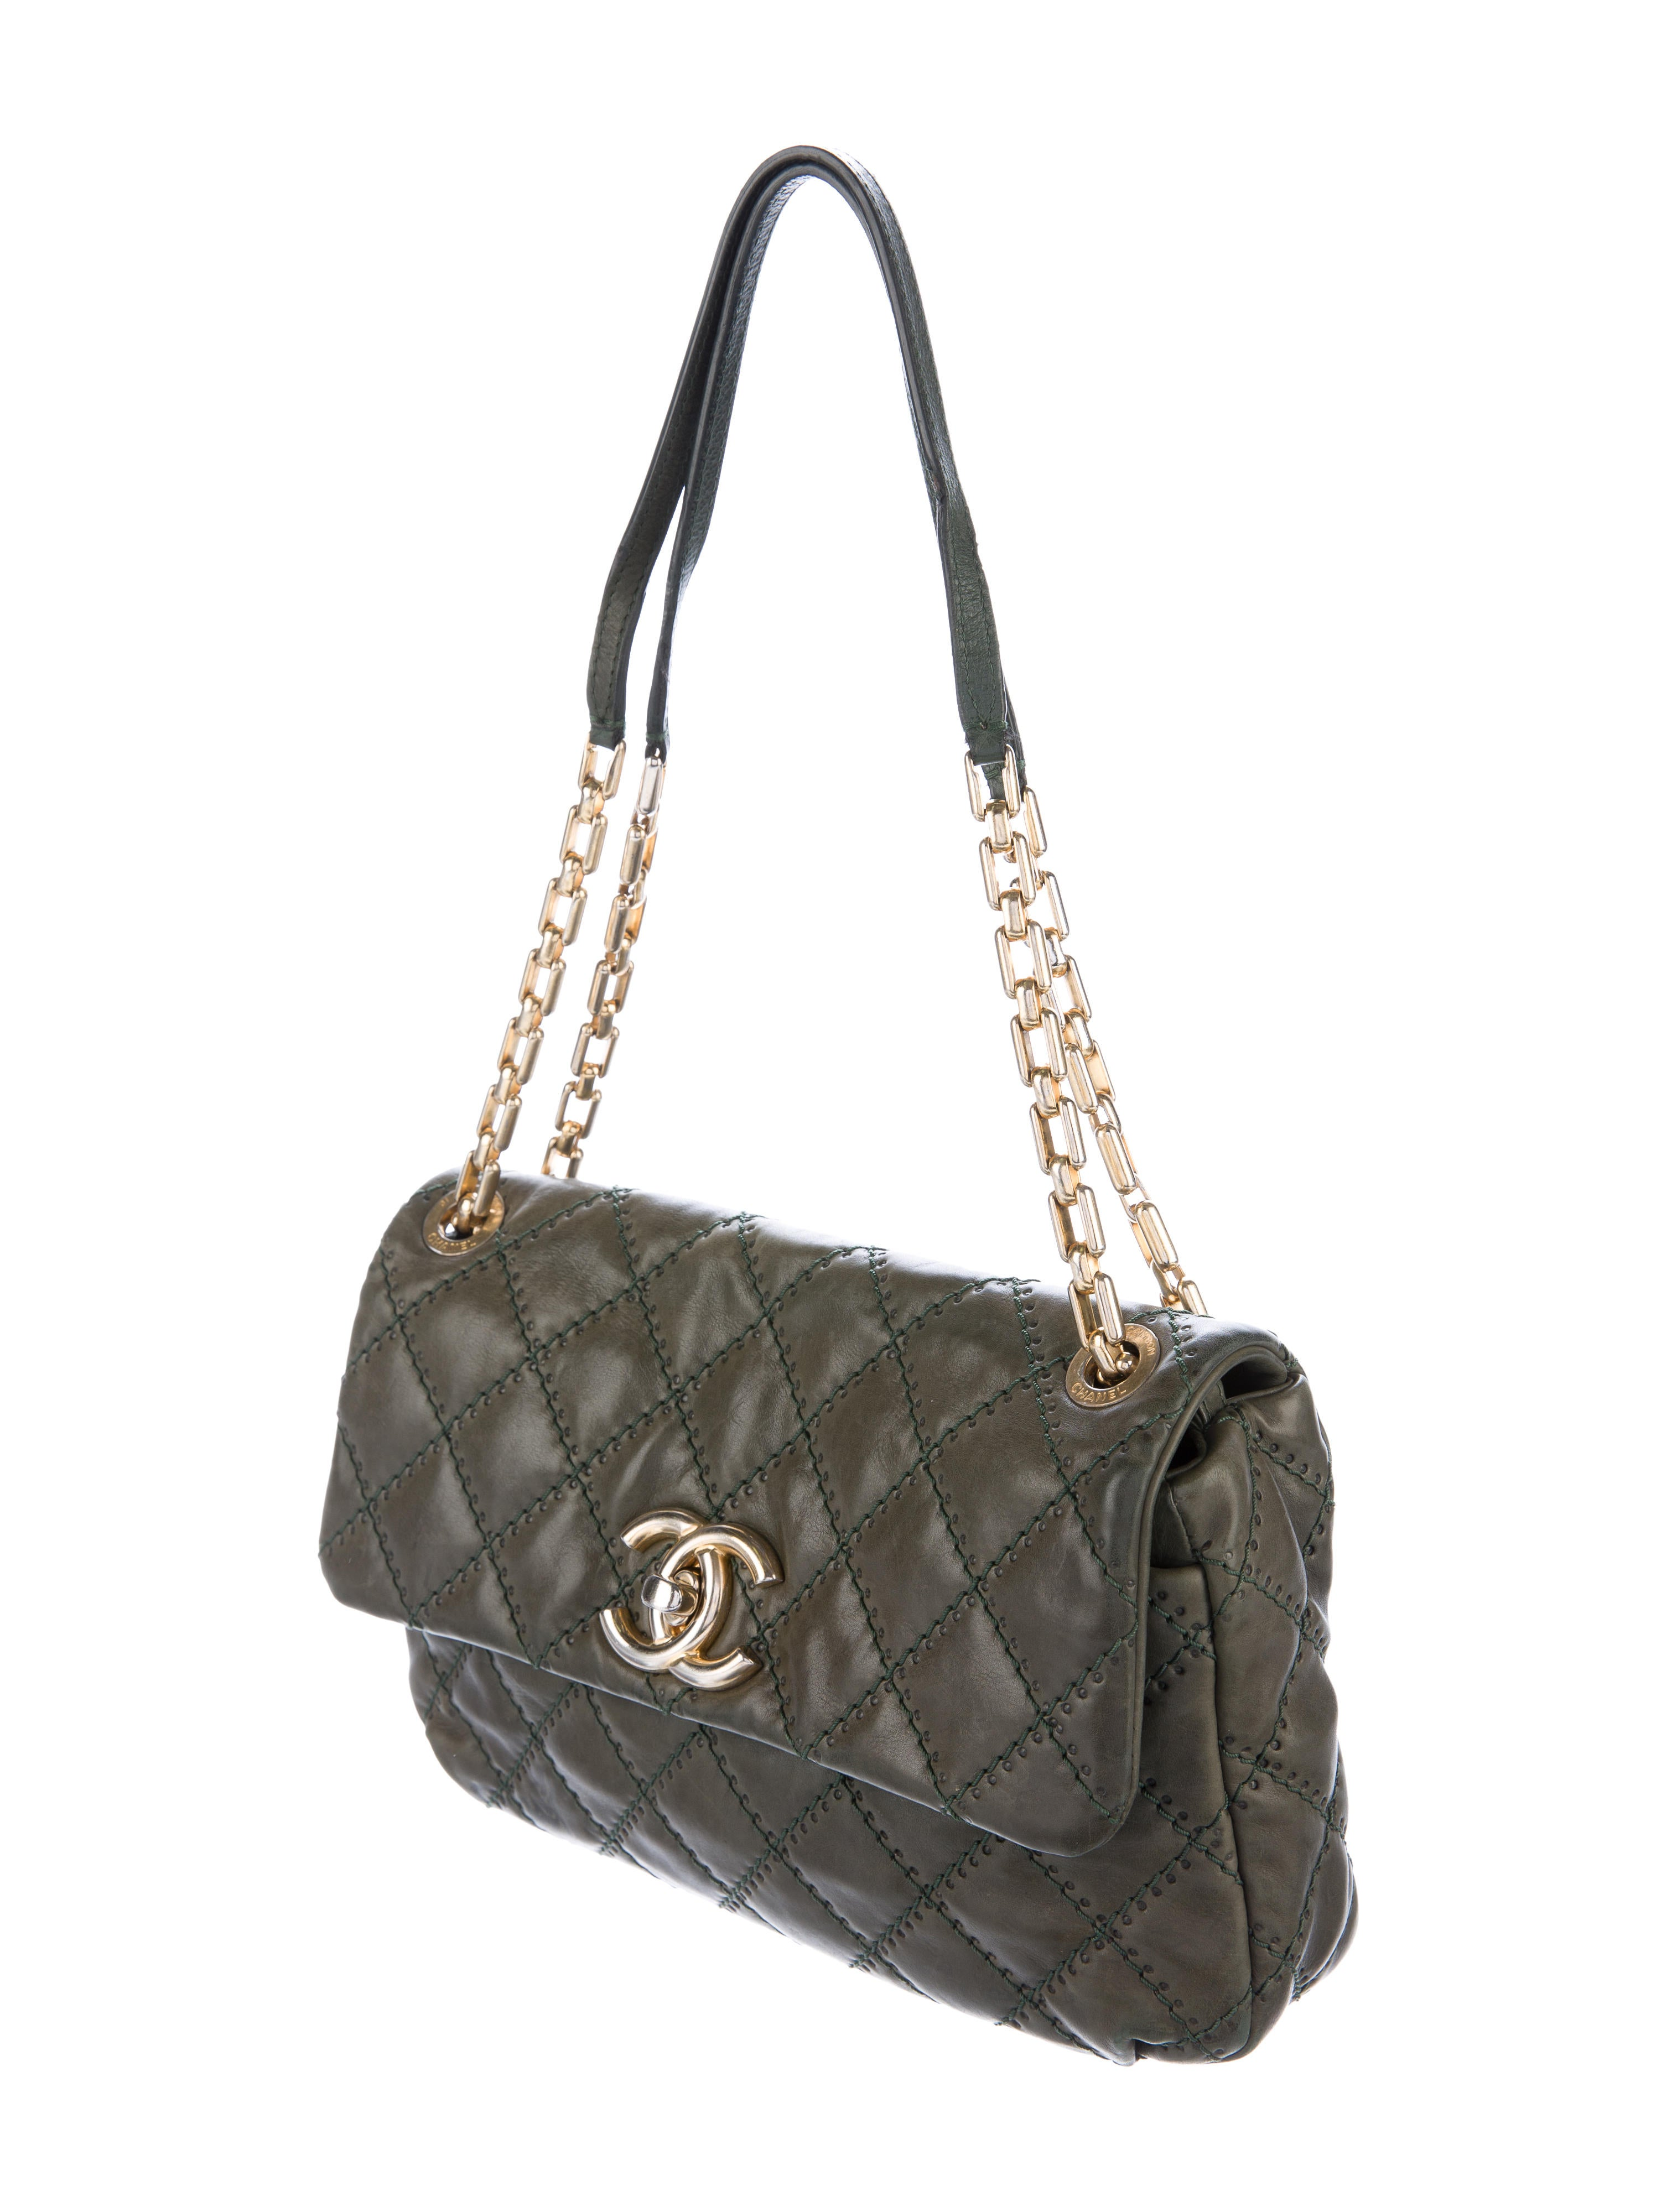 1a334b03964d1f Chanel Retro Chain Flap Bag | Stanford Center for Opportunity Policy ...